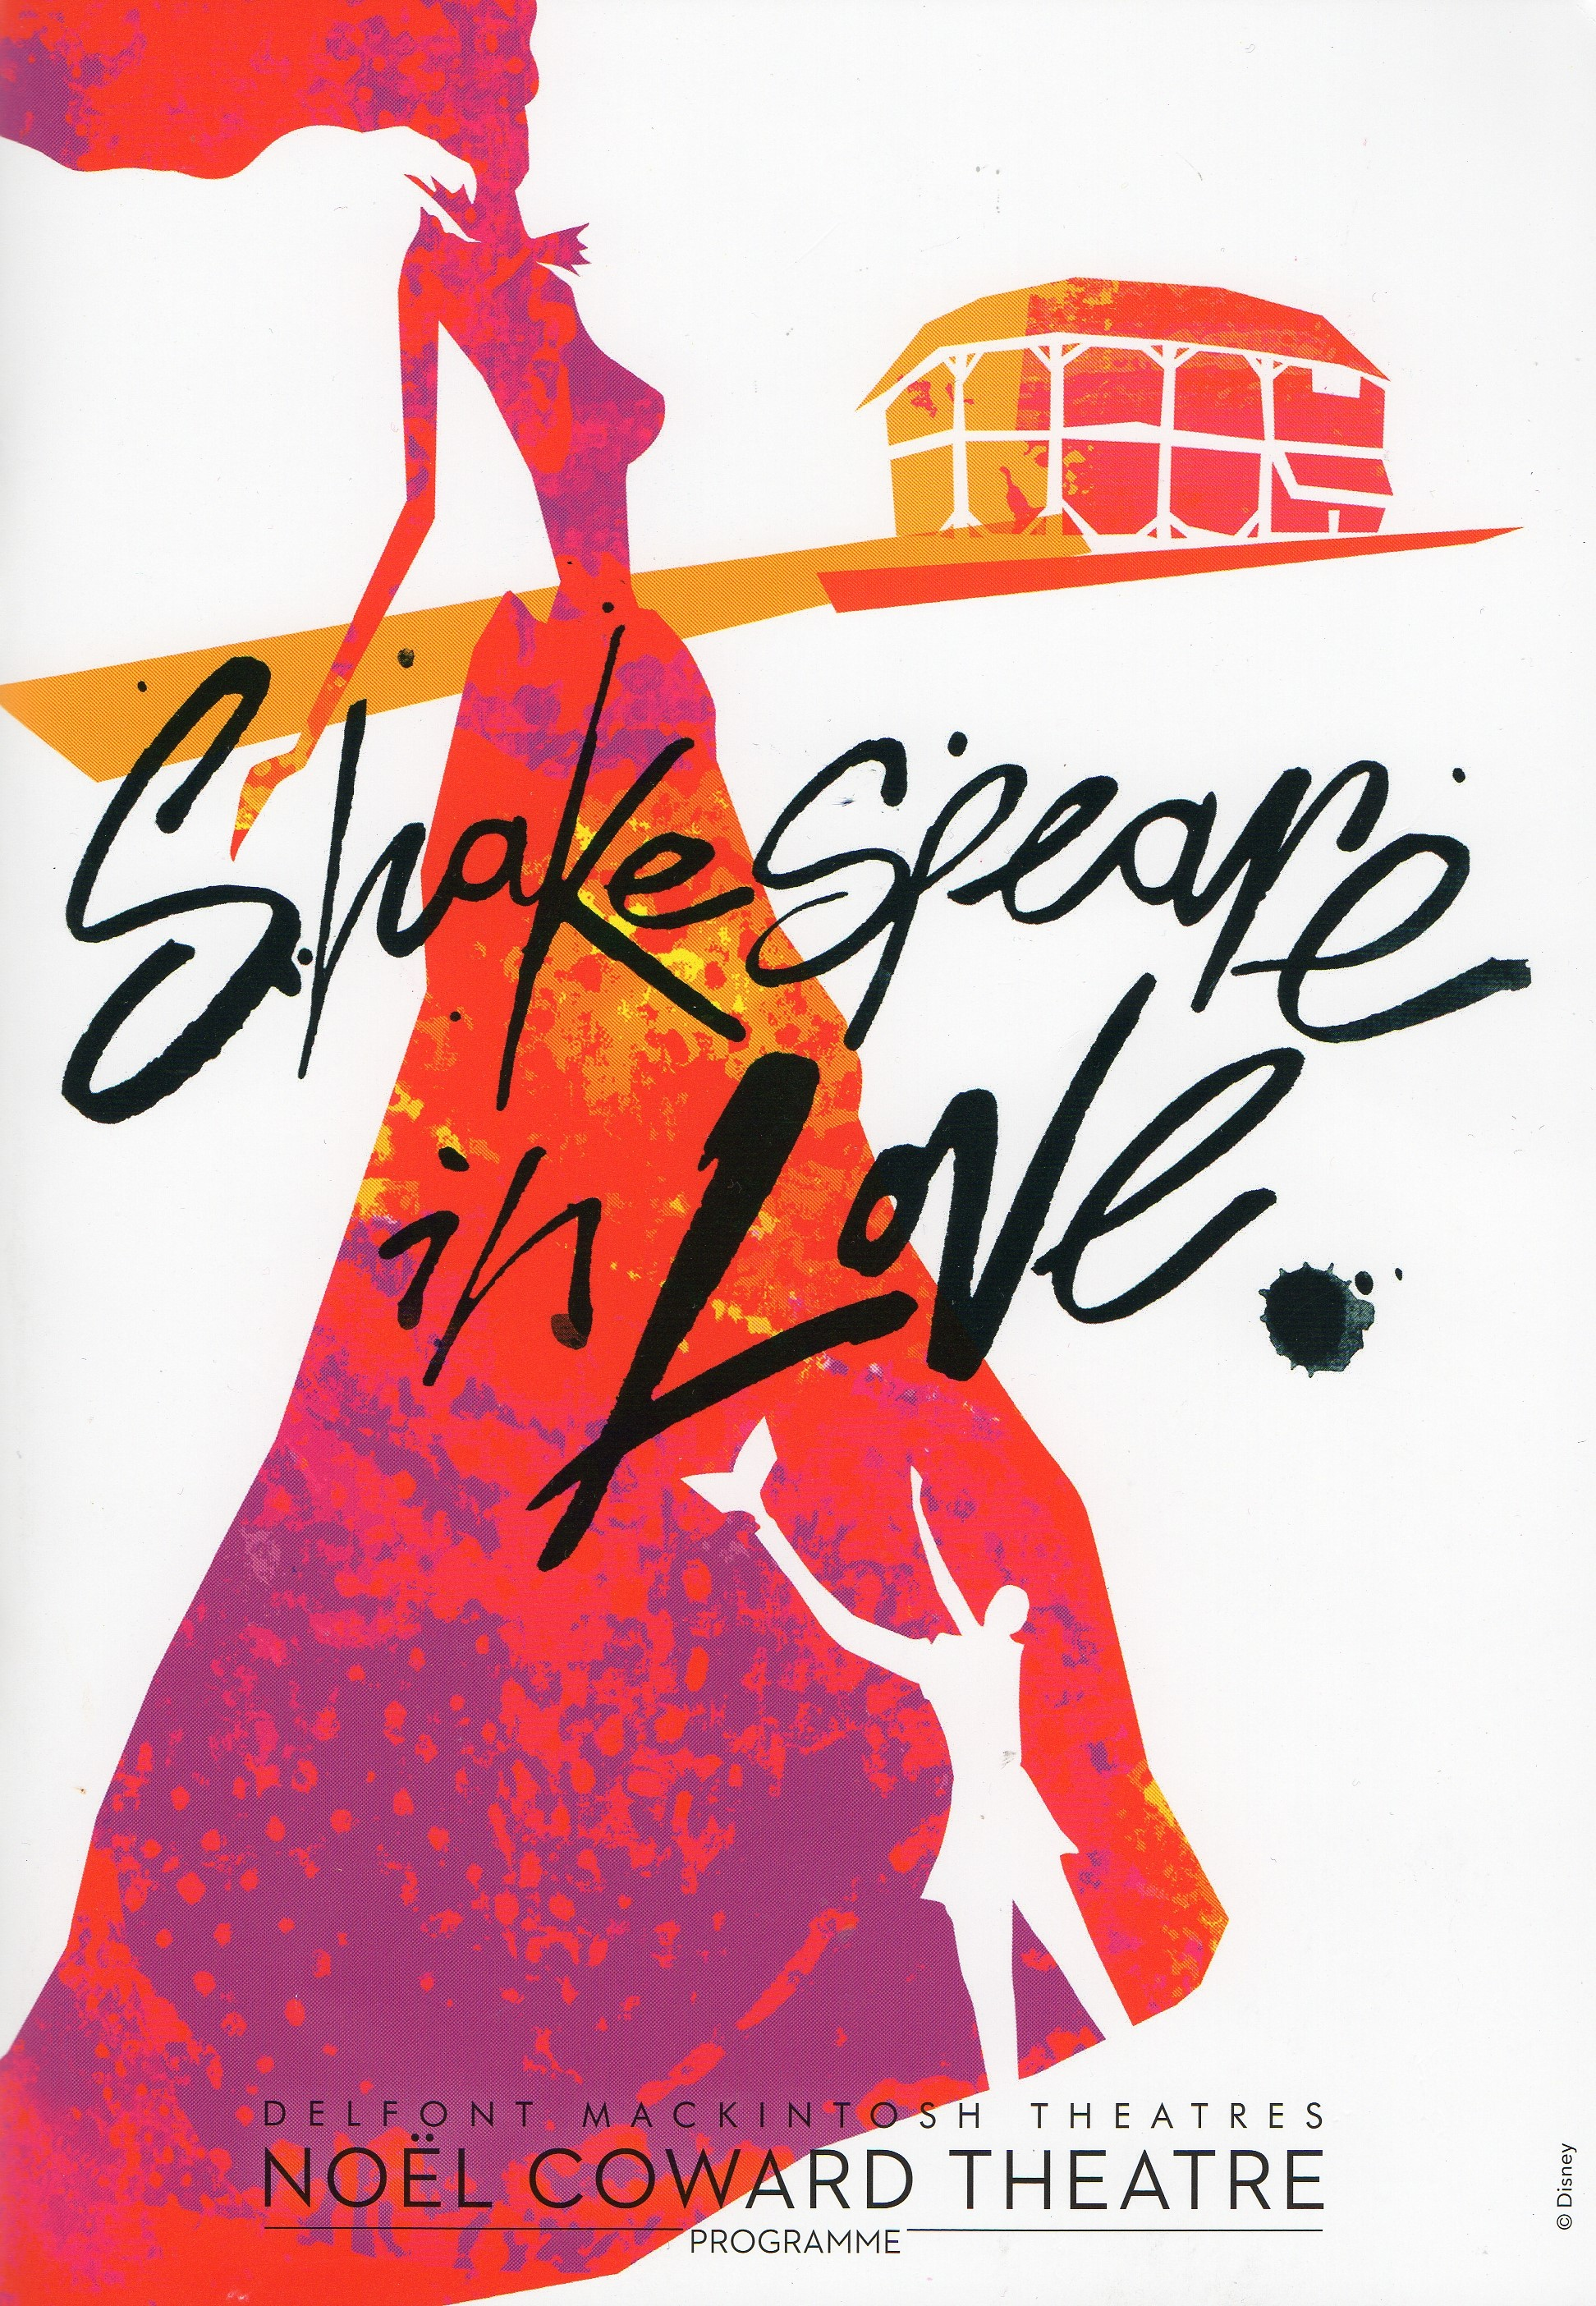 nature to love ones in shakespeare s And understanding shakespeare can lead to greater understanding of the  and  everything that we have personal contact with exemplifies one or more  in the  play twelfth night, the love-sick orsino and the mourning olivia.